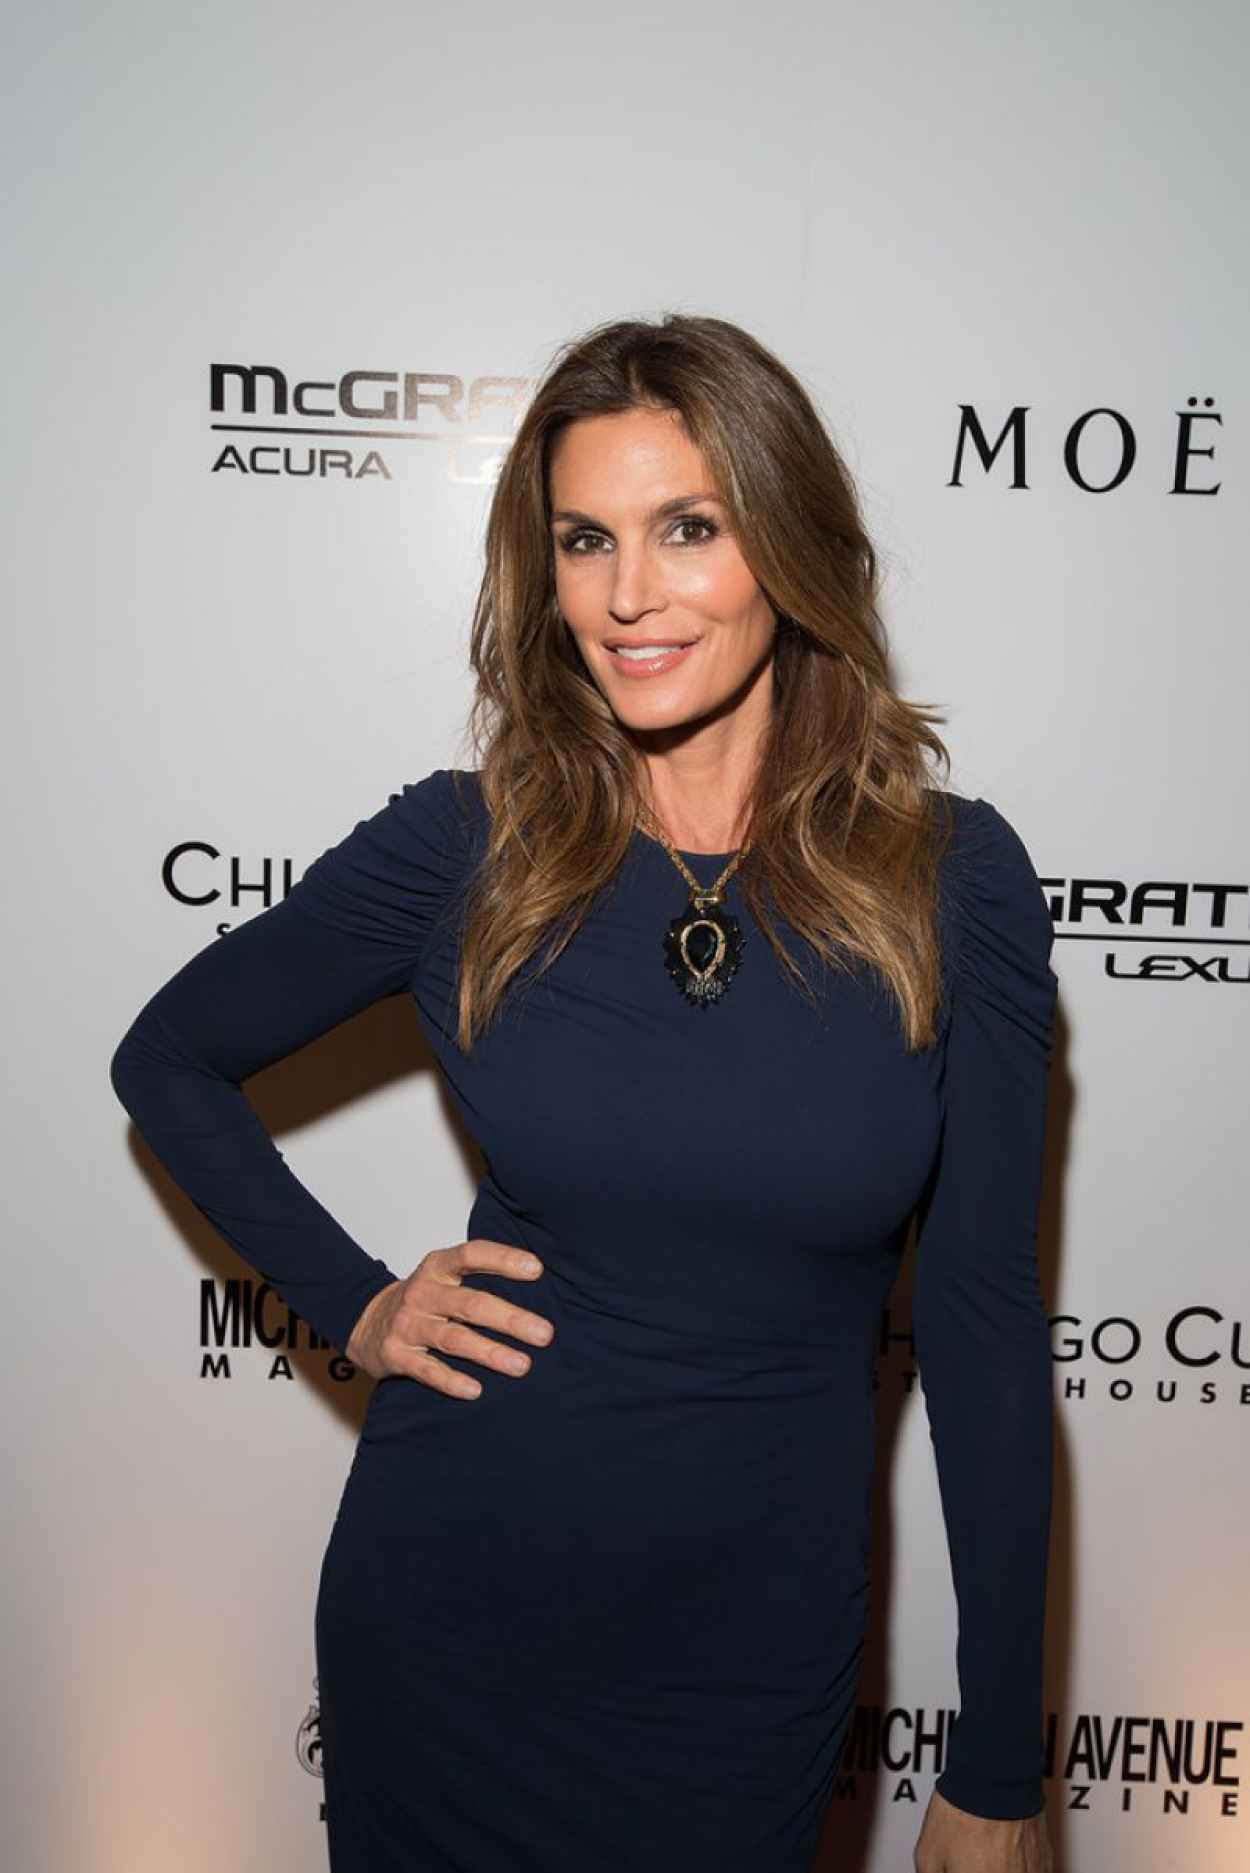 Cindy Crawford - Michigan Ave Magazines November 2015 Issue Release Celebration in Chicago-1